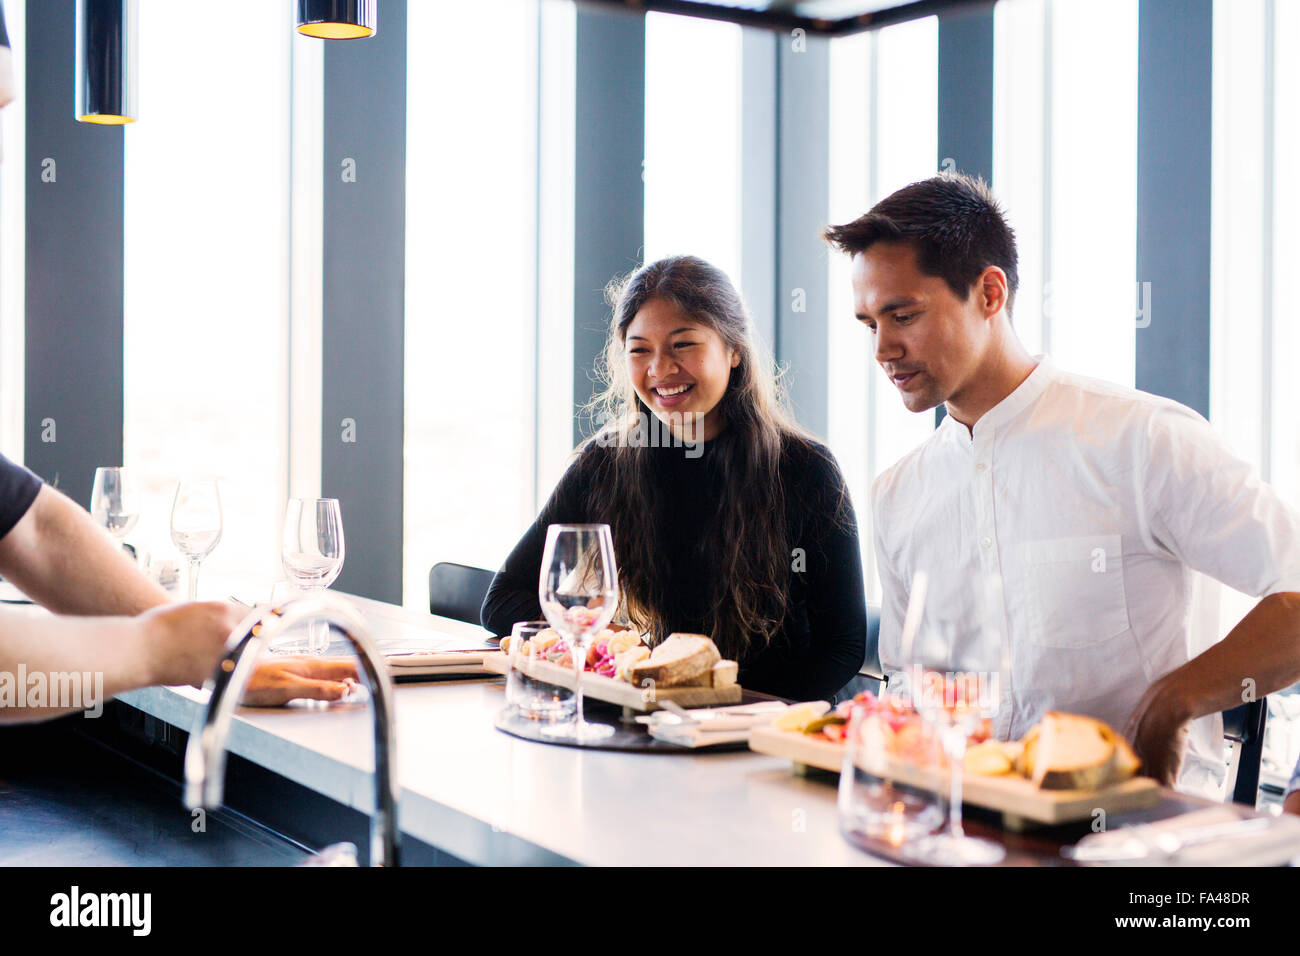 Happy friends looking at dishes in Sky bar restaurant - Stock Image